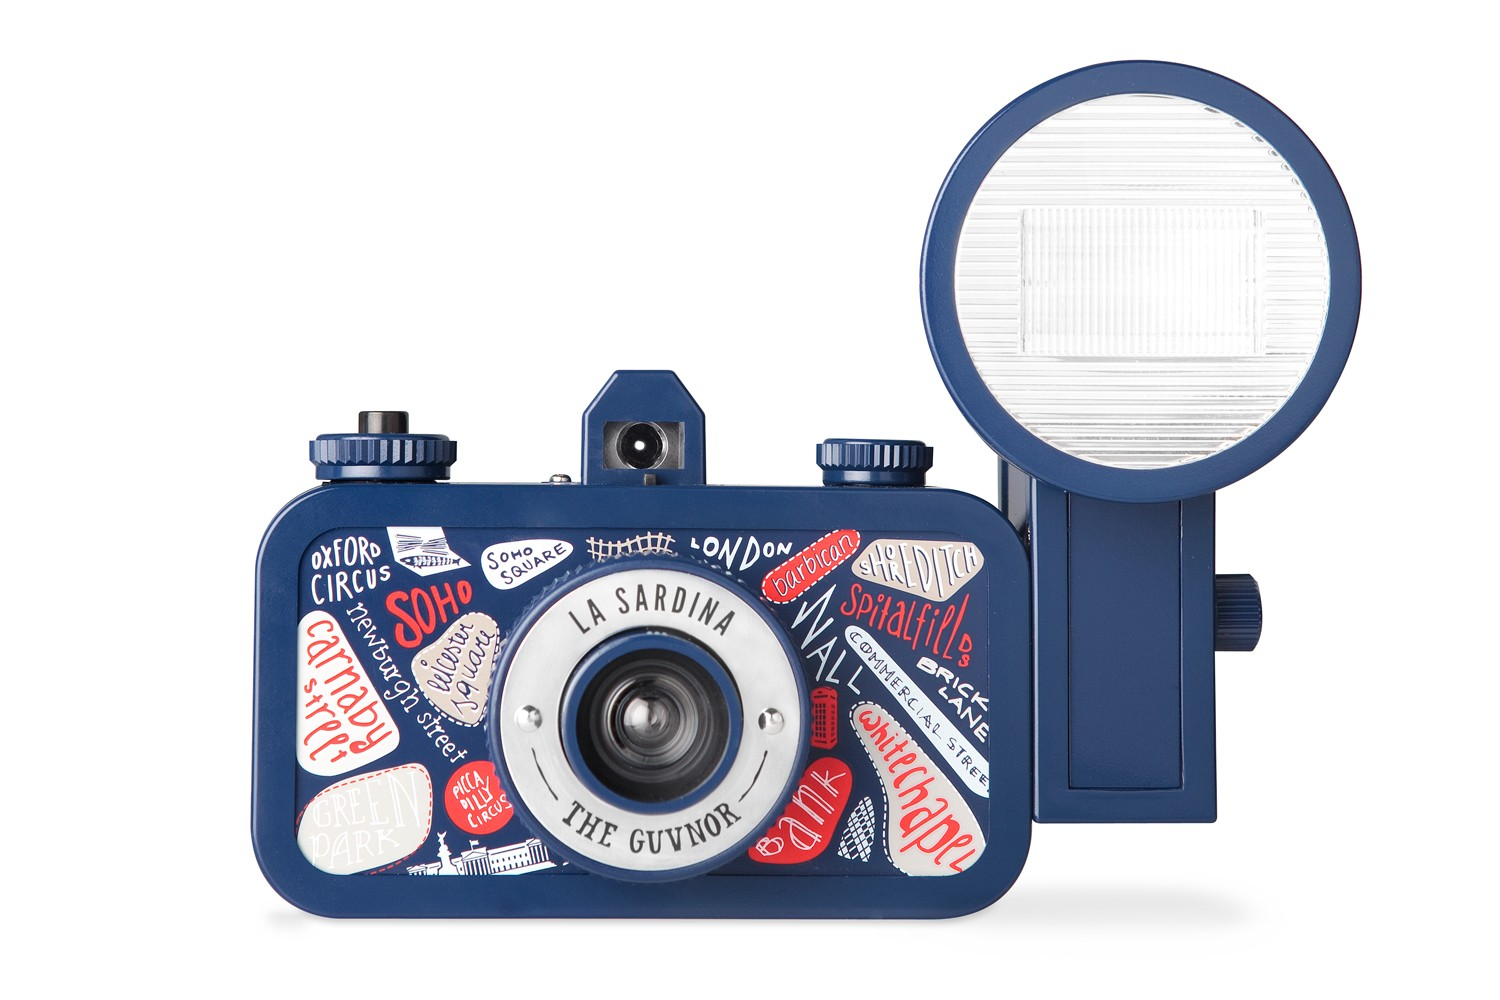 La Sardina Camera and Flash (The Guvnor Edition)